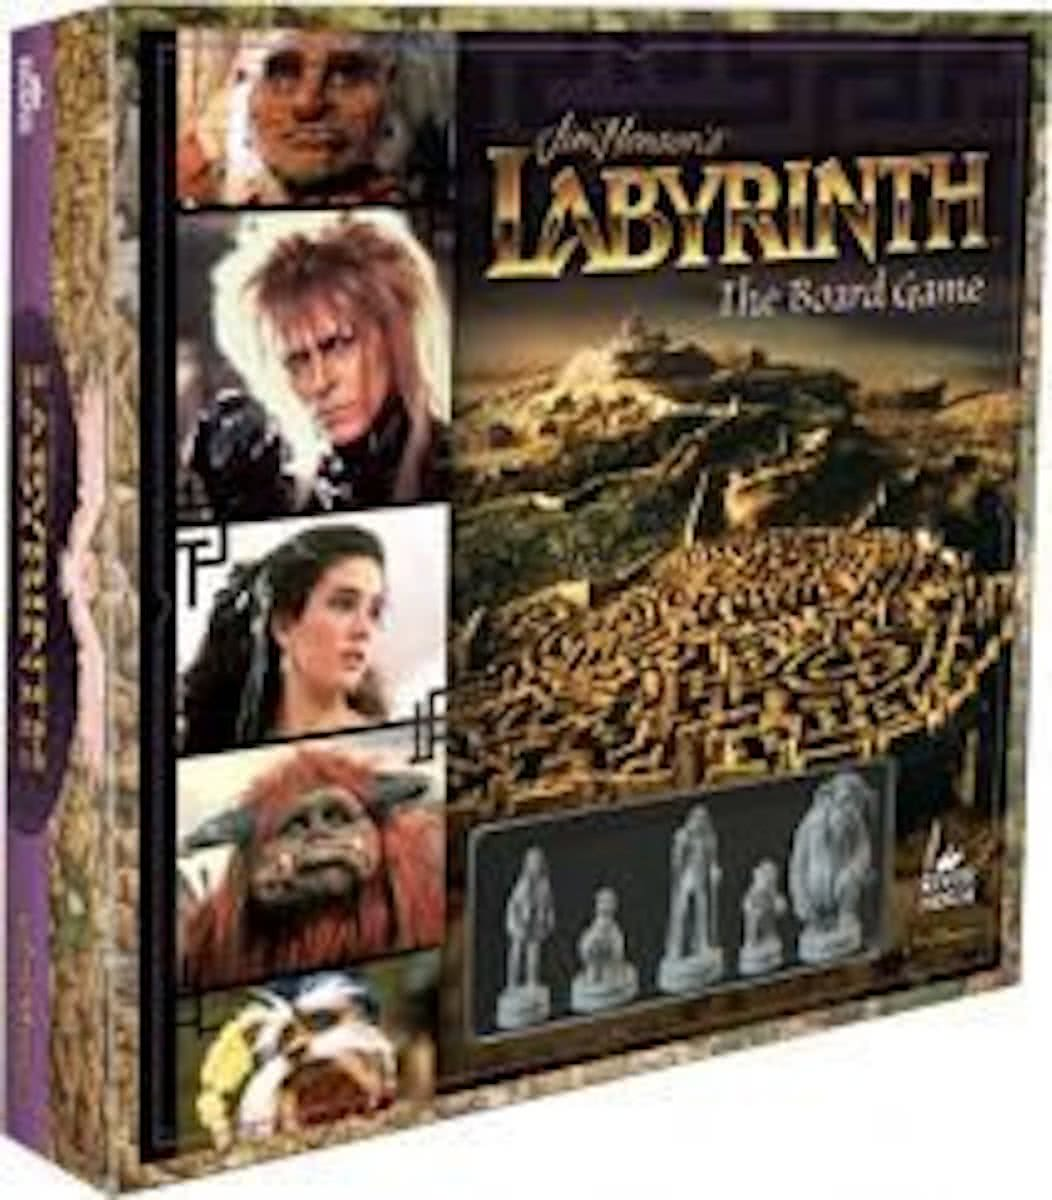 Jim Hensons Labyrinth: The Board Game